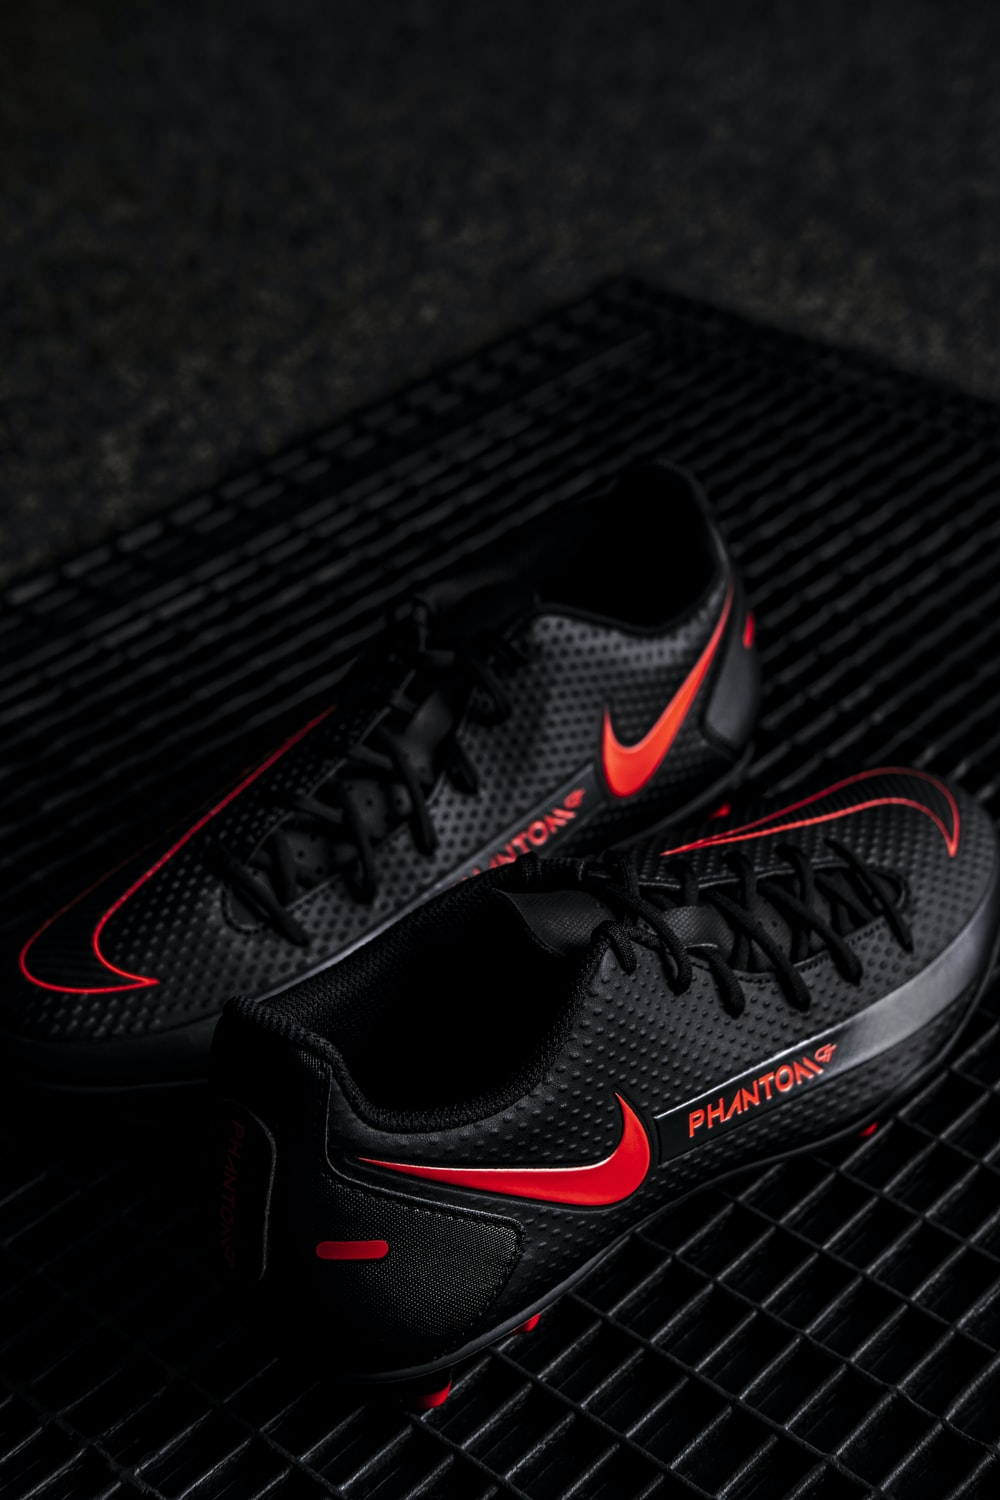 black and red nike athletic shoe